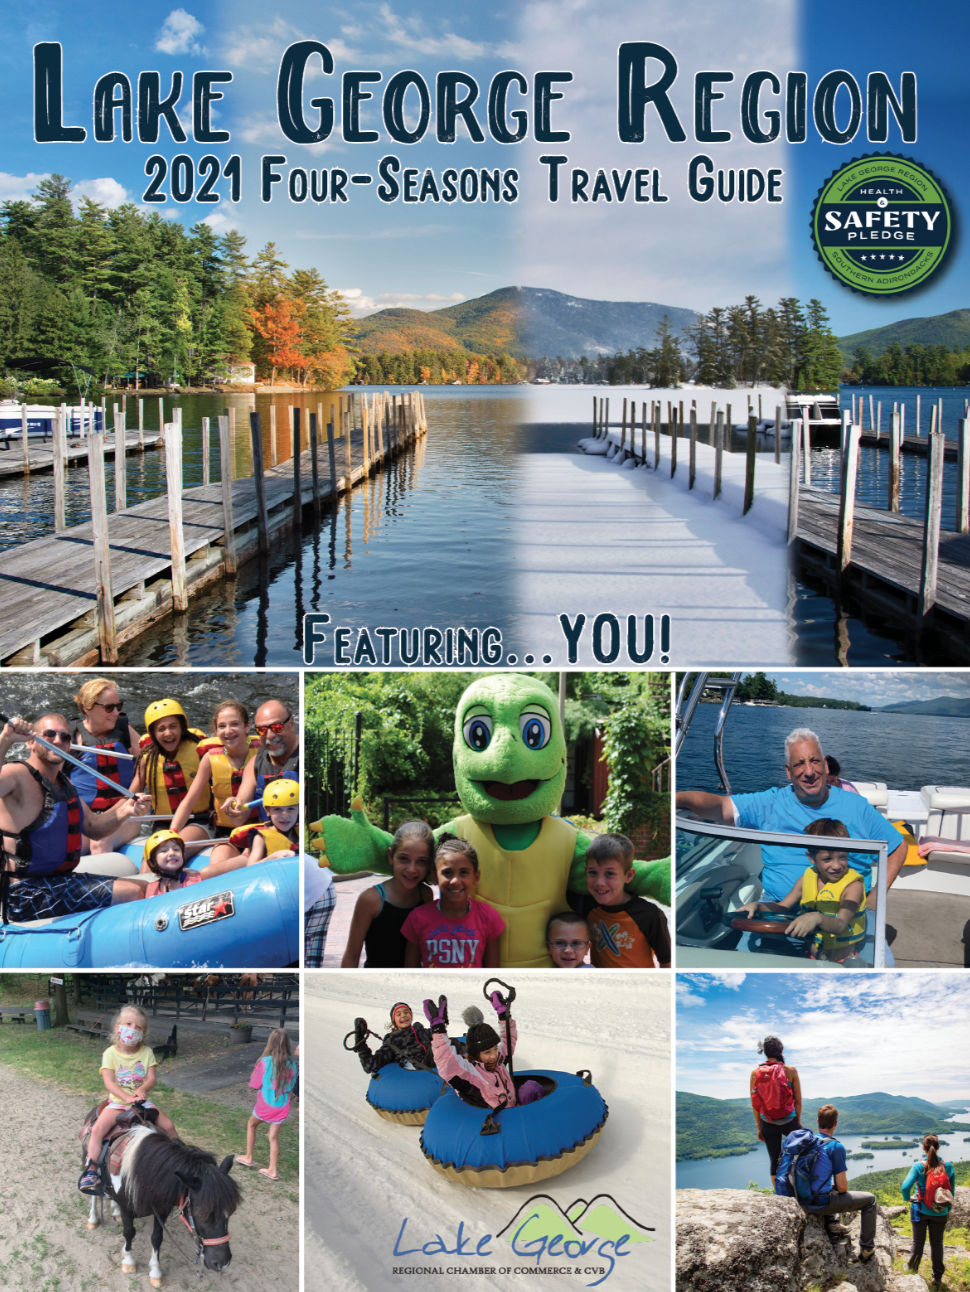 2021 lake george ny travel guide cover